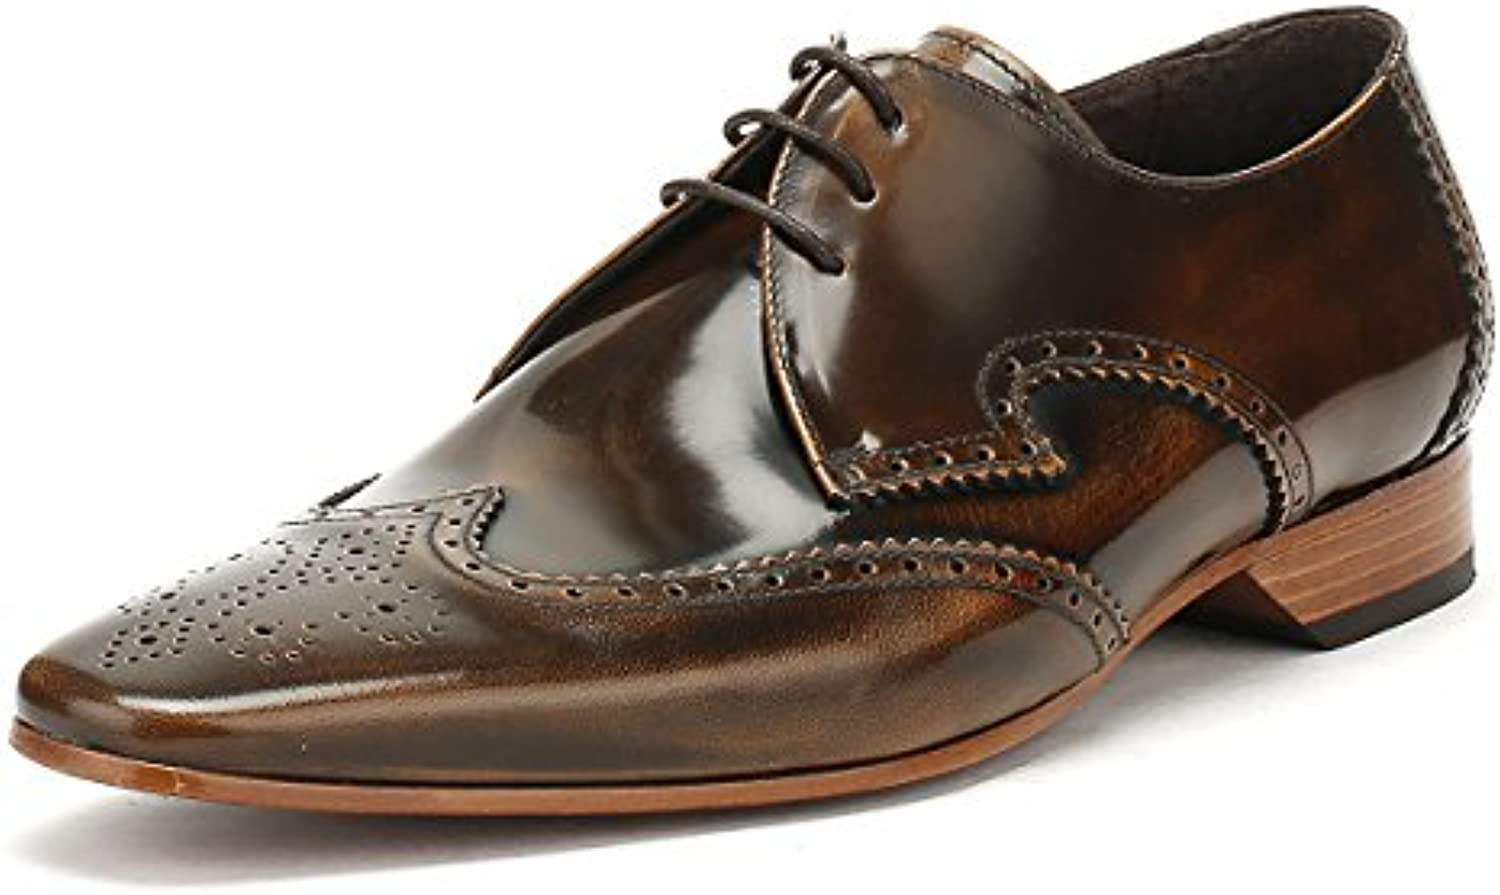 Jeffery West Hombres College Camel Marrón Escobar Brogue Gibson Zapatos -